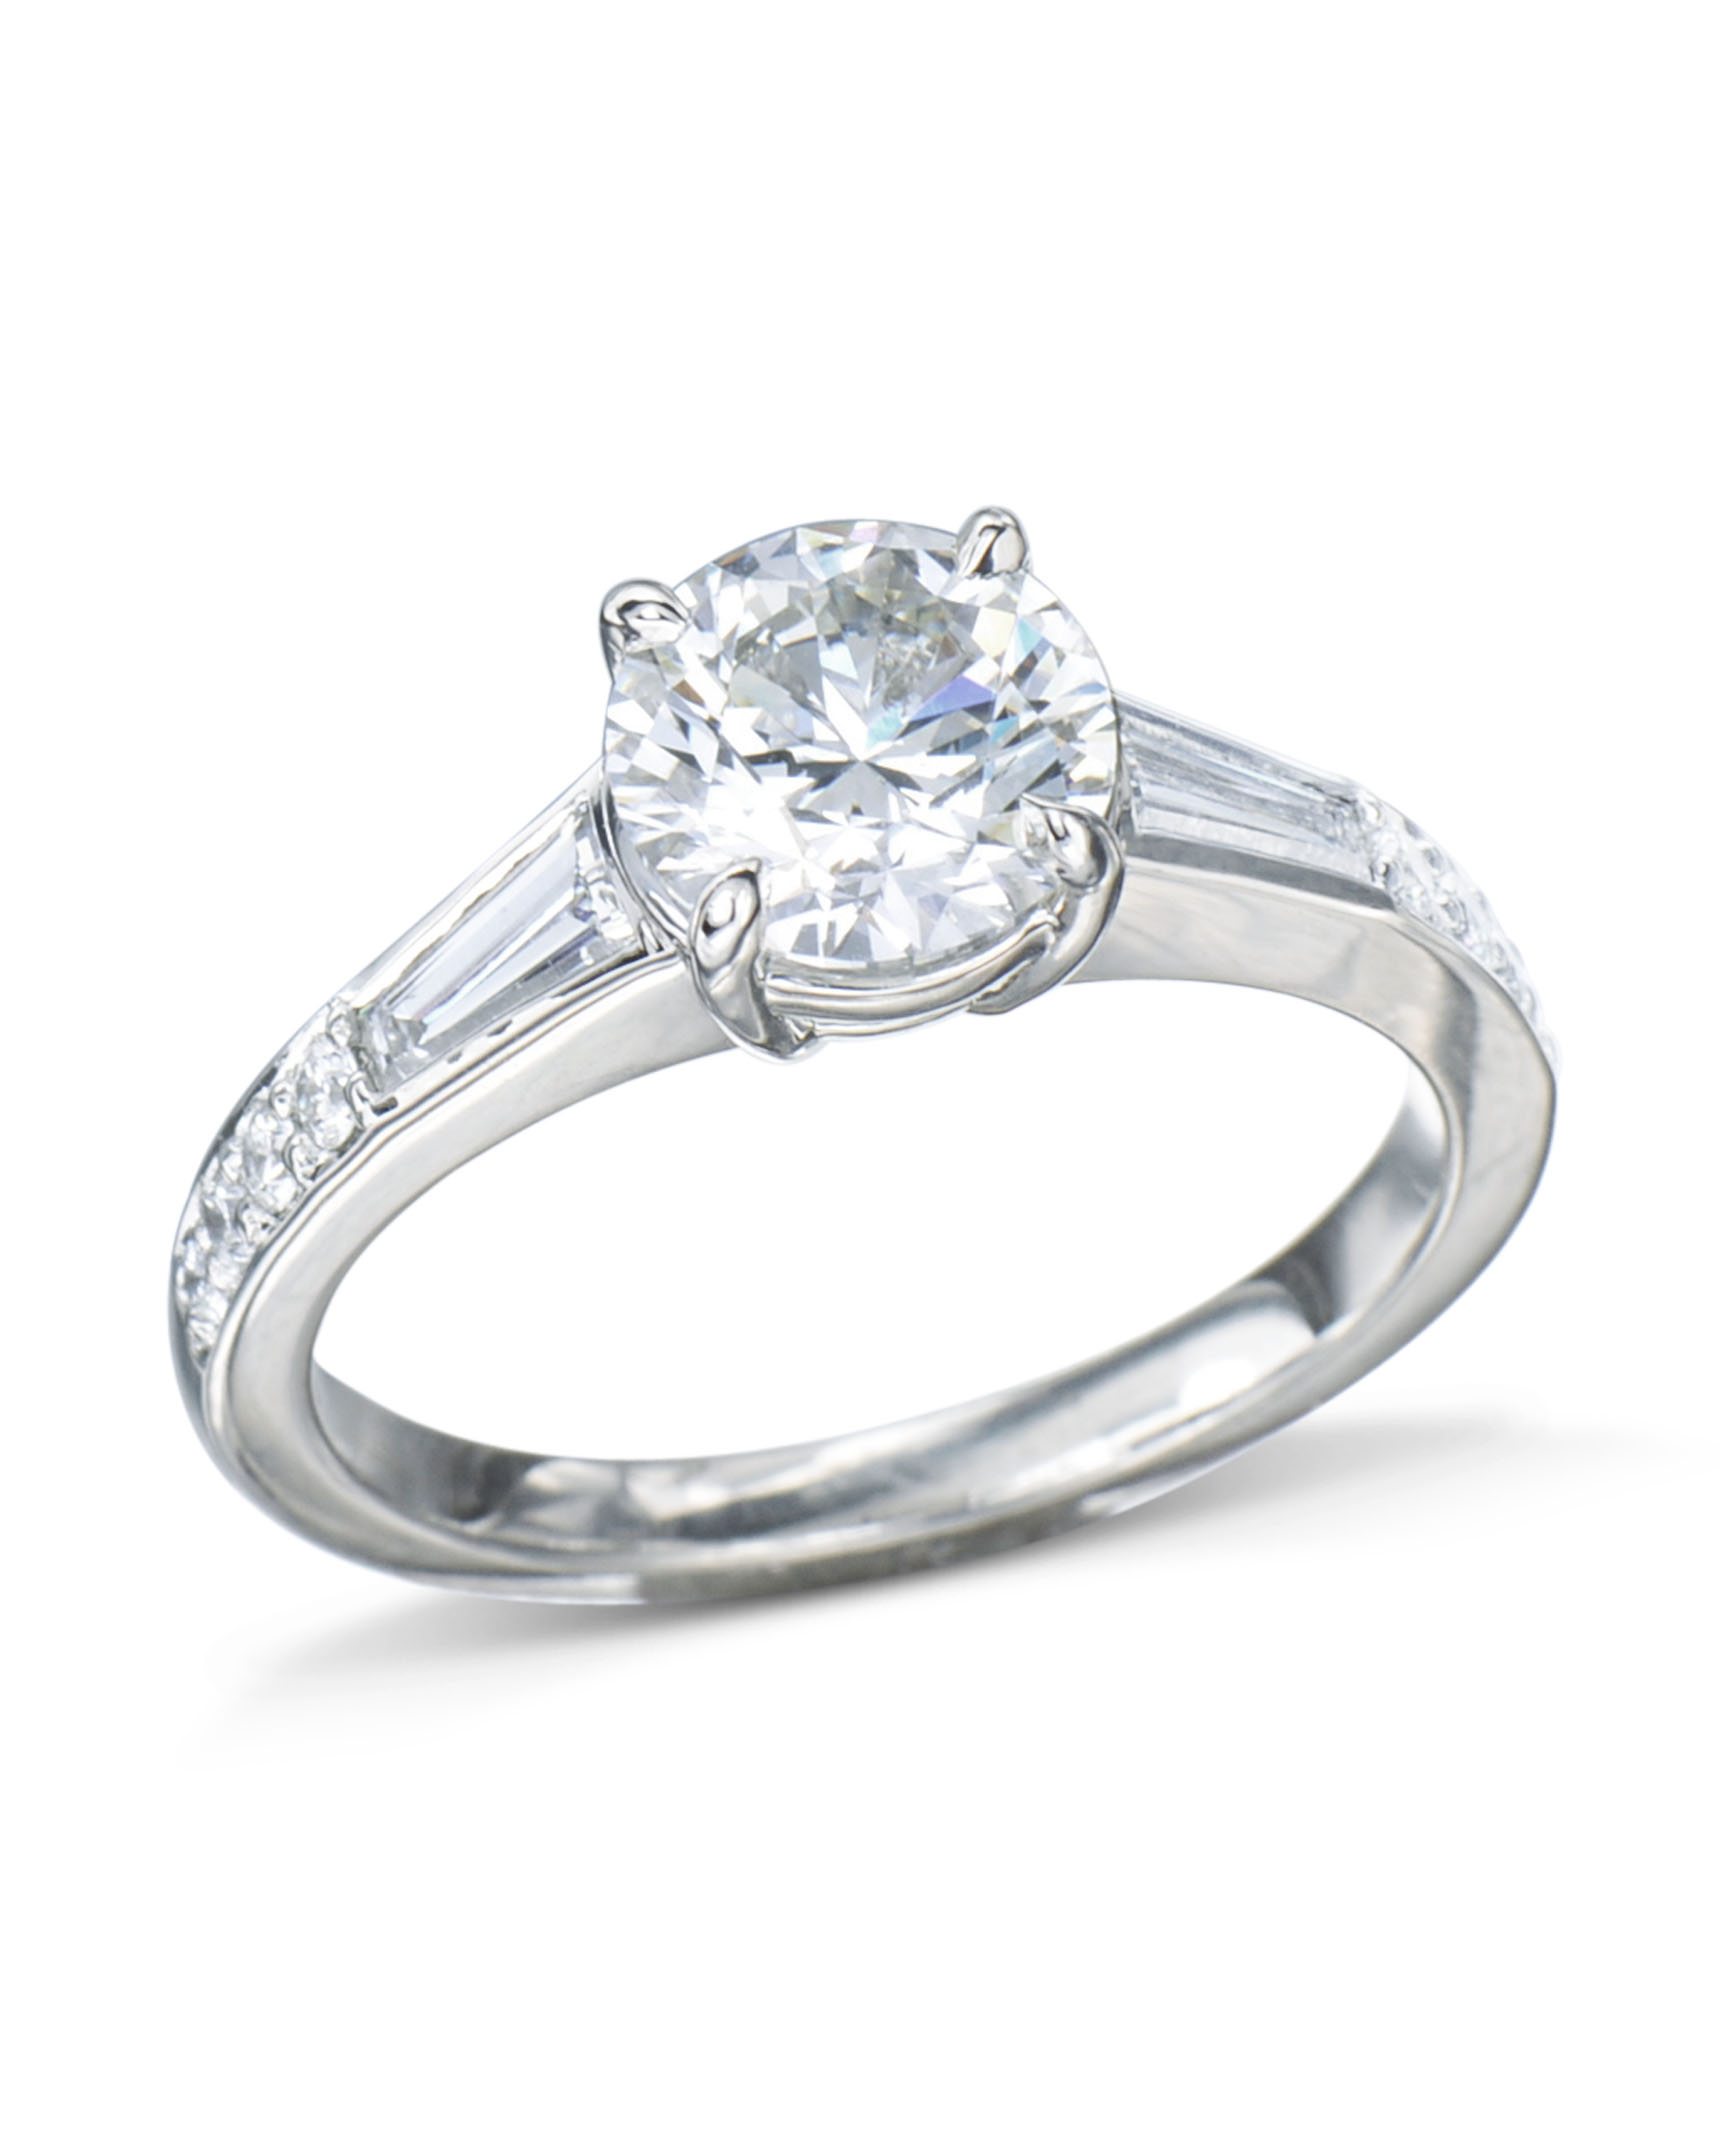 diamonds engagement centres ring charm solitaire diamond melody rings product